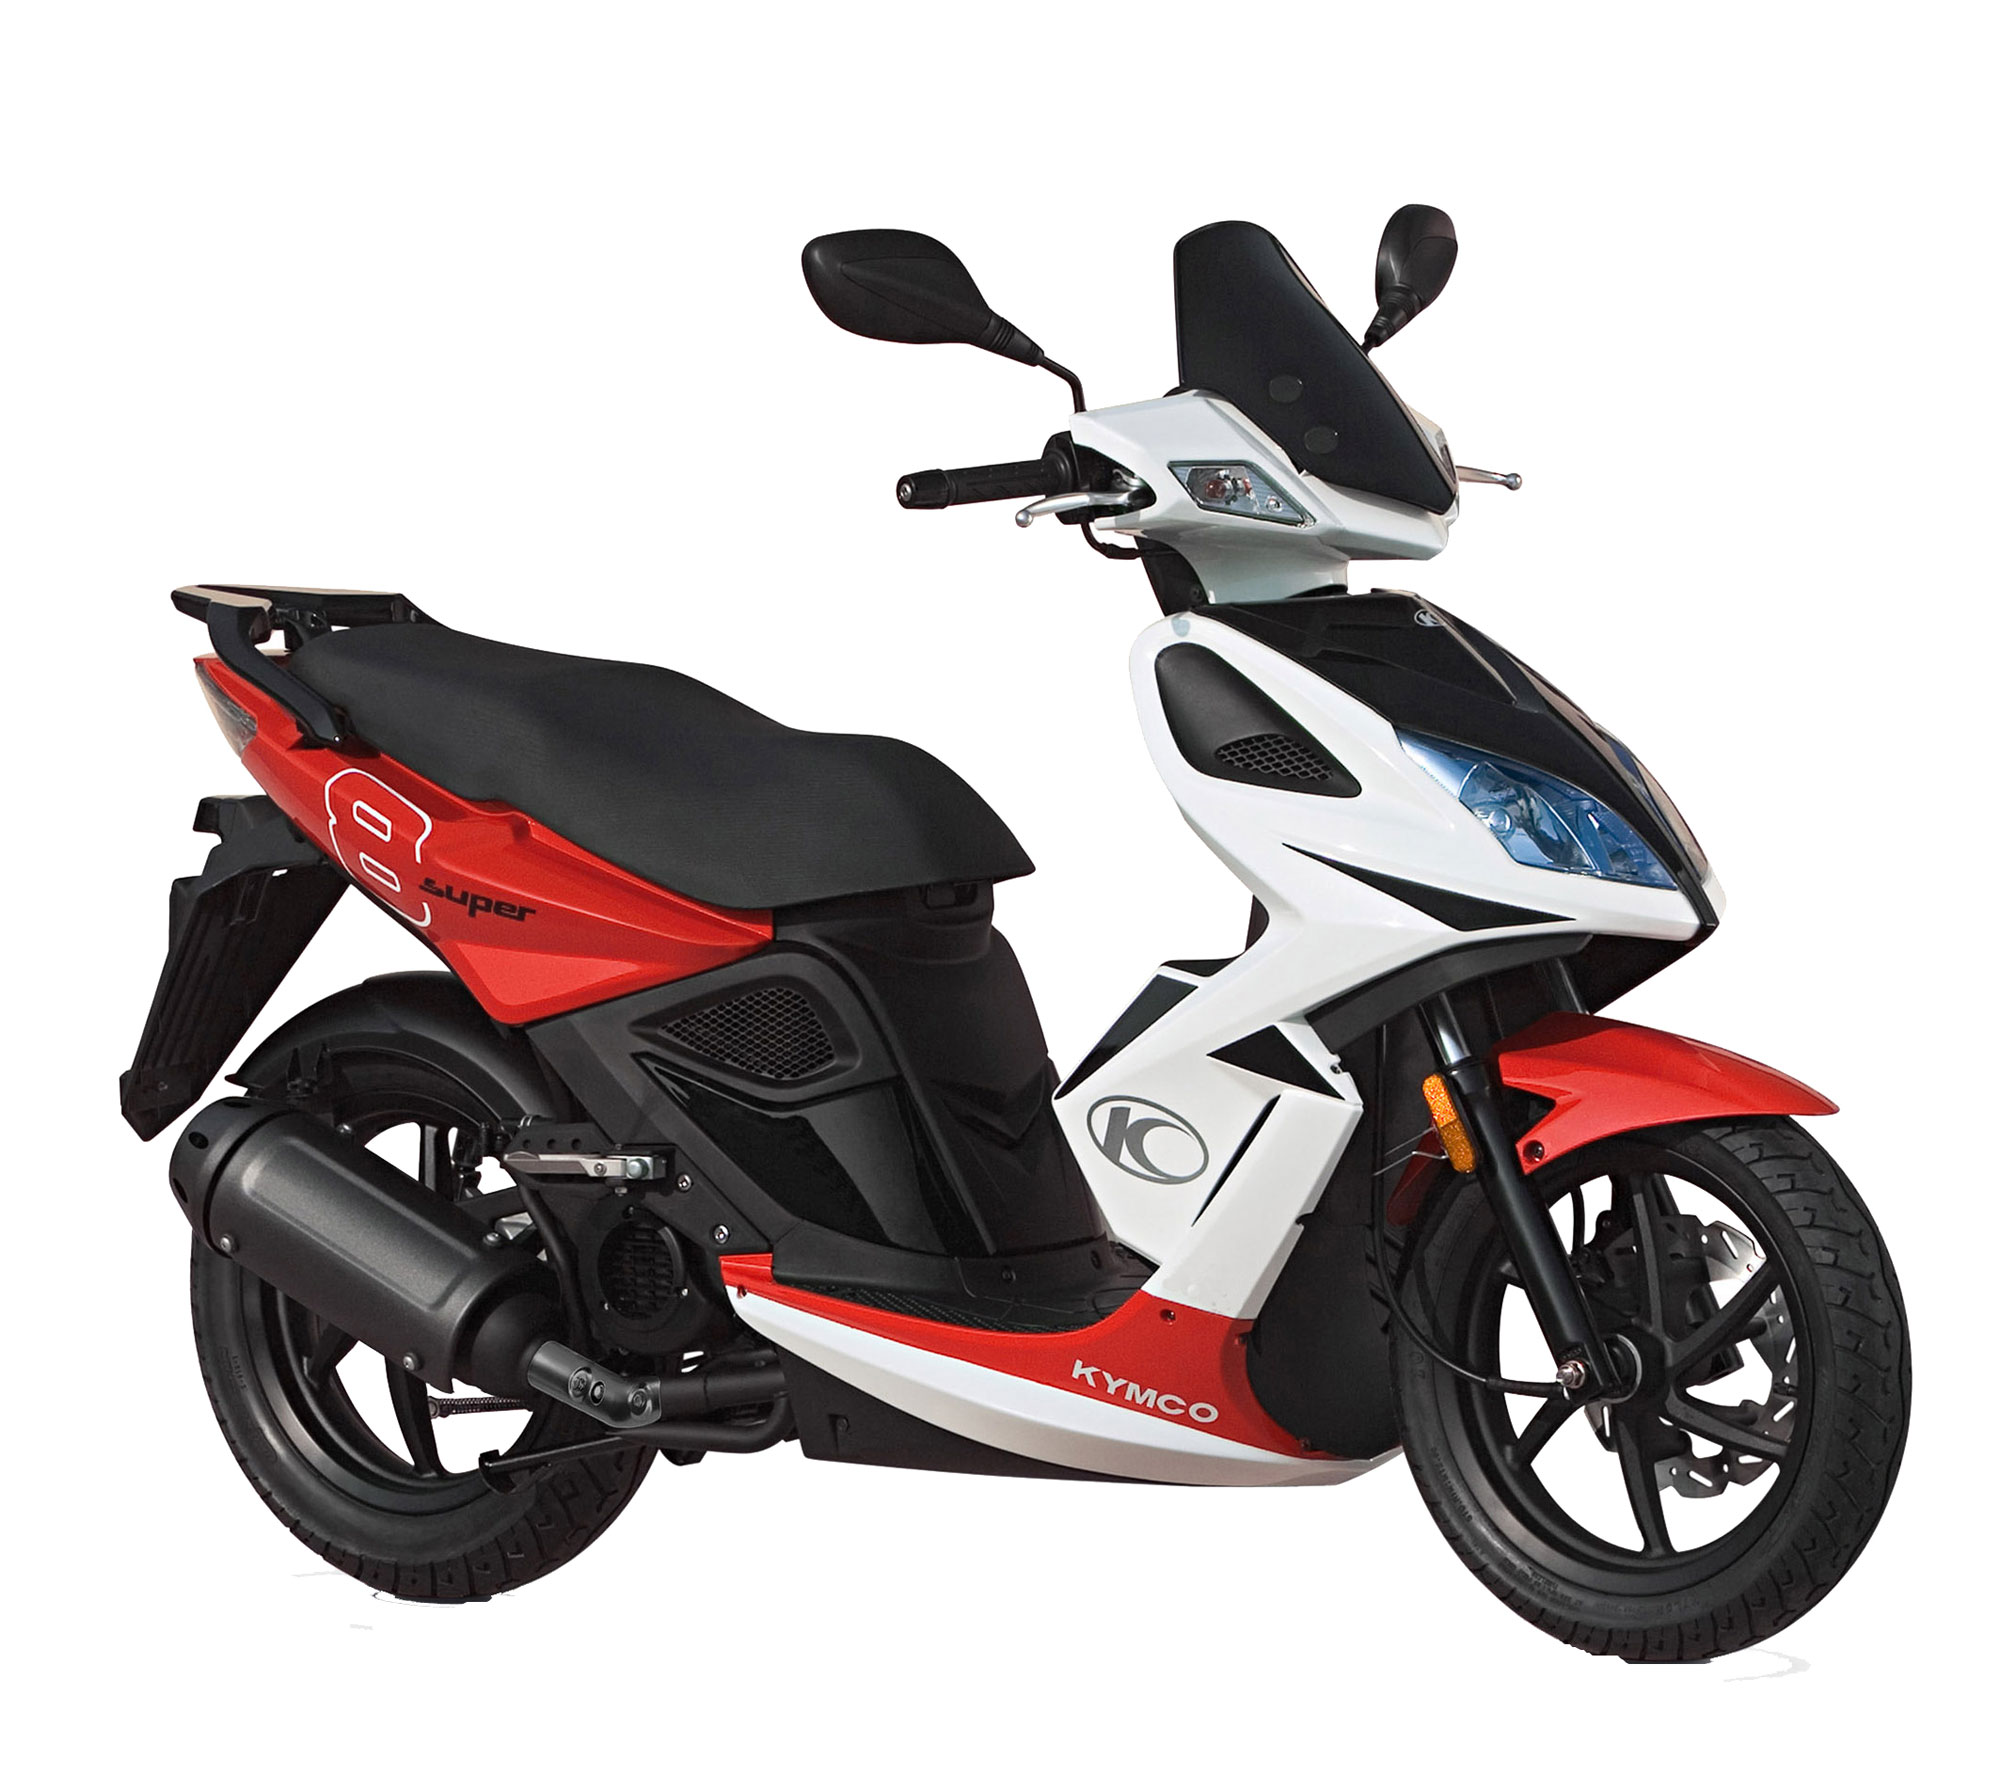 2013 Kymco Super 8 150 | Top Speed